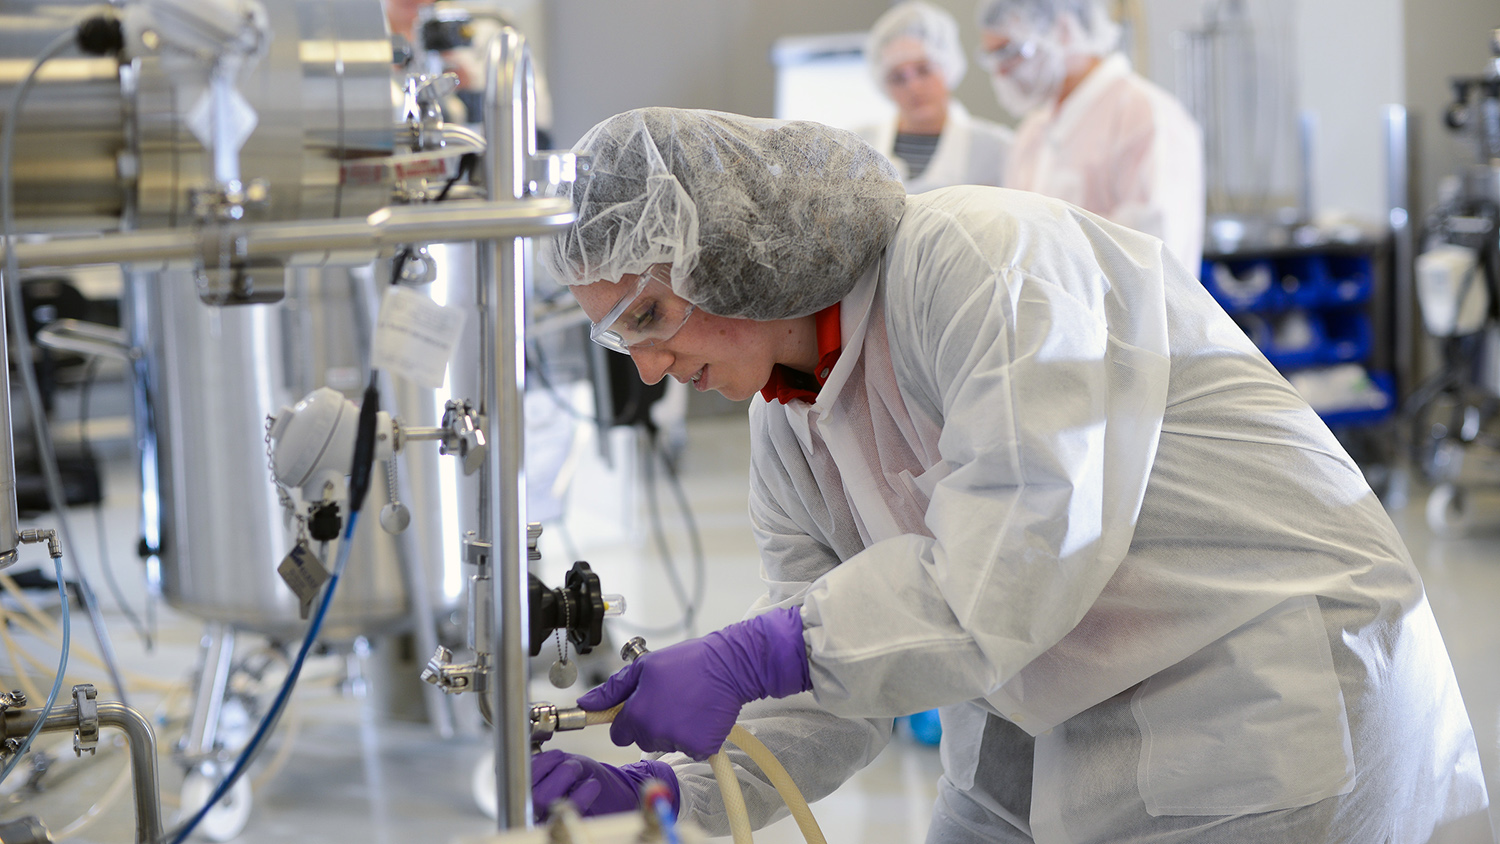 A graduate student at work in a biopharmaceutical lab.